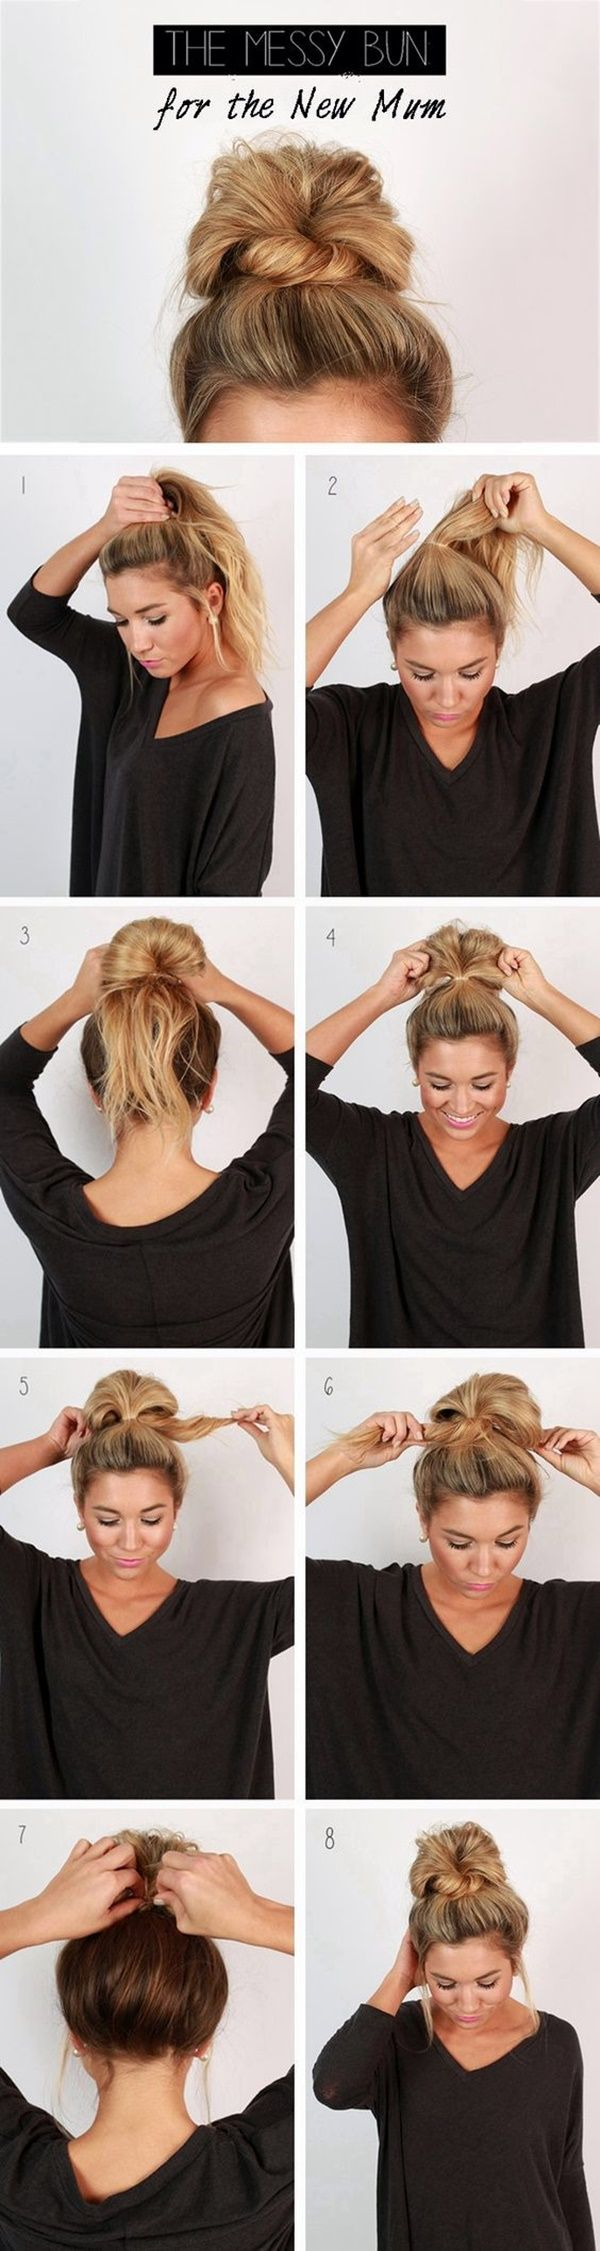 quick hairstyle tutorials for office women quick hairstyles